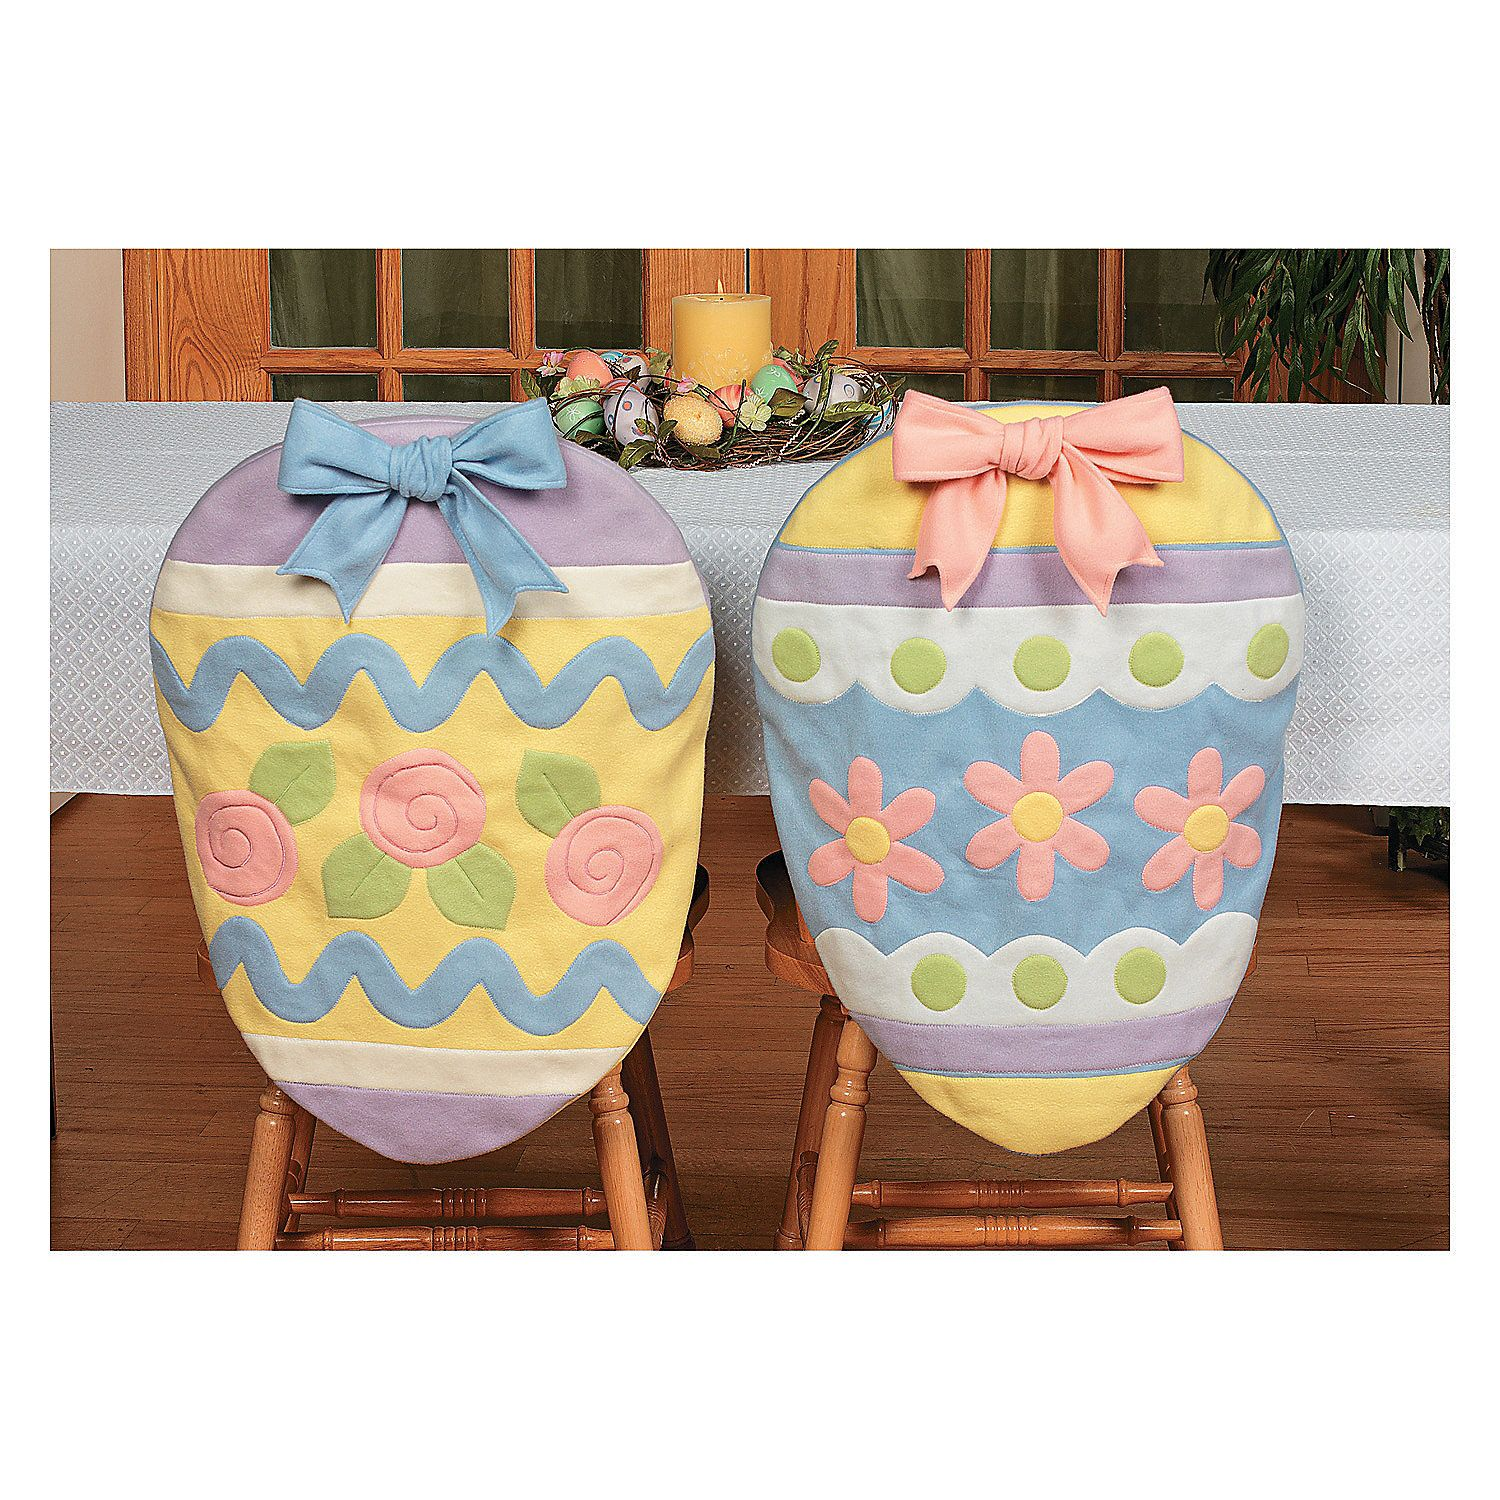 Christmas Chair Covers Pinterest Spa Pedicure For Sale Easter Egg Orientaltrading Taten 1st